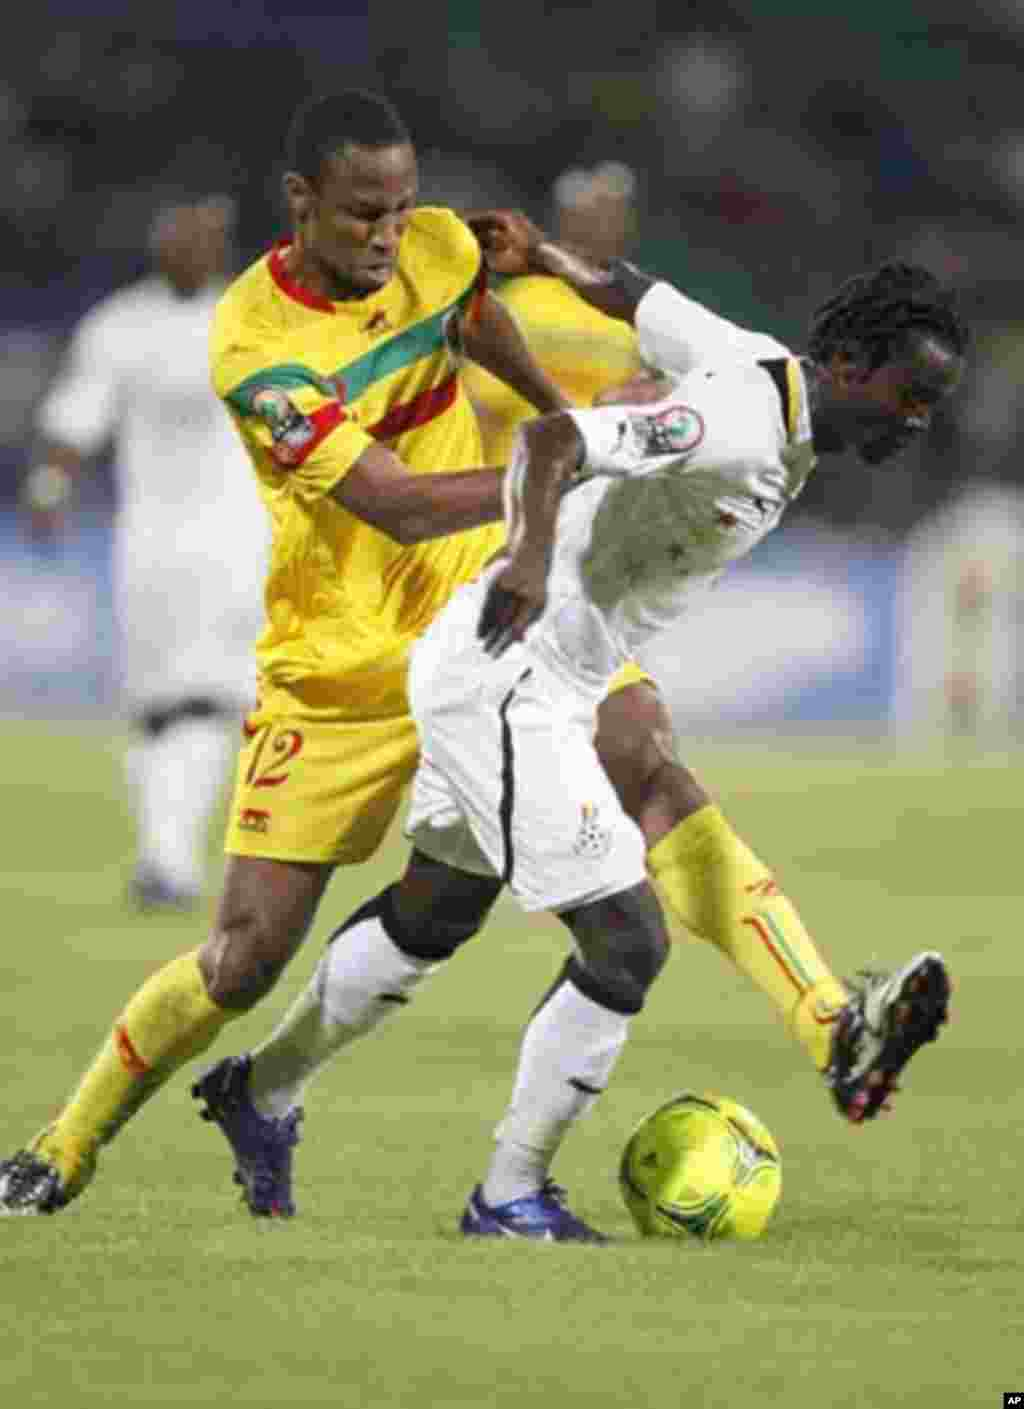 Ghana's Annan Anthony (R) challenges Kaita Seydou of Mali during their African Cup of Nations Group D soccer match in FranceVille Stadium January 28, 2012.